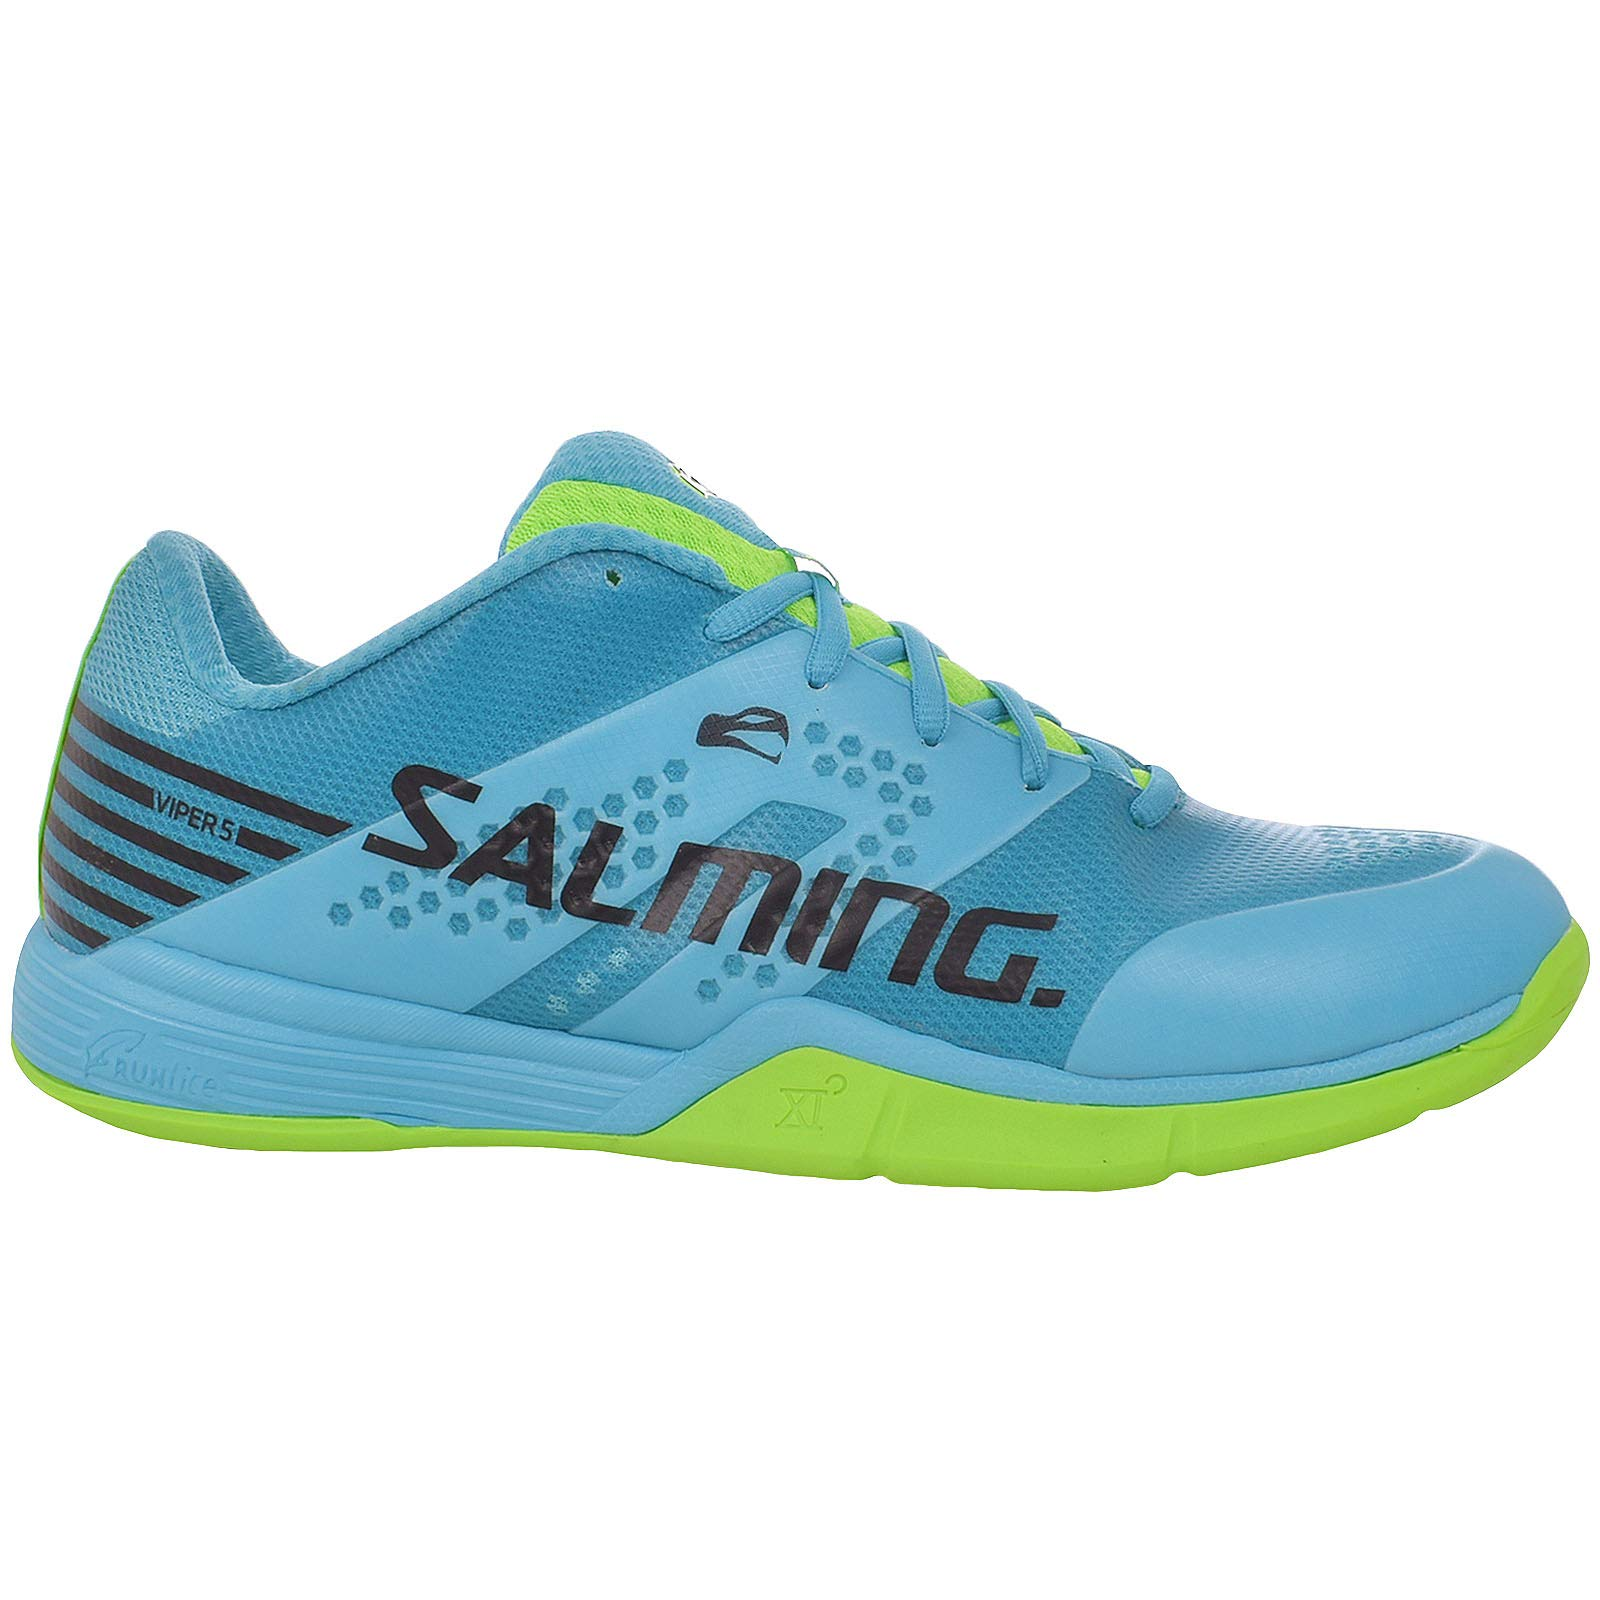 Salming Viper 5 Mens Indoor Court Shoe (Blue/Green)